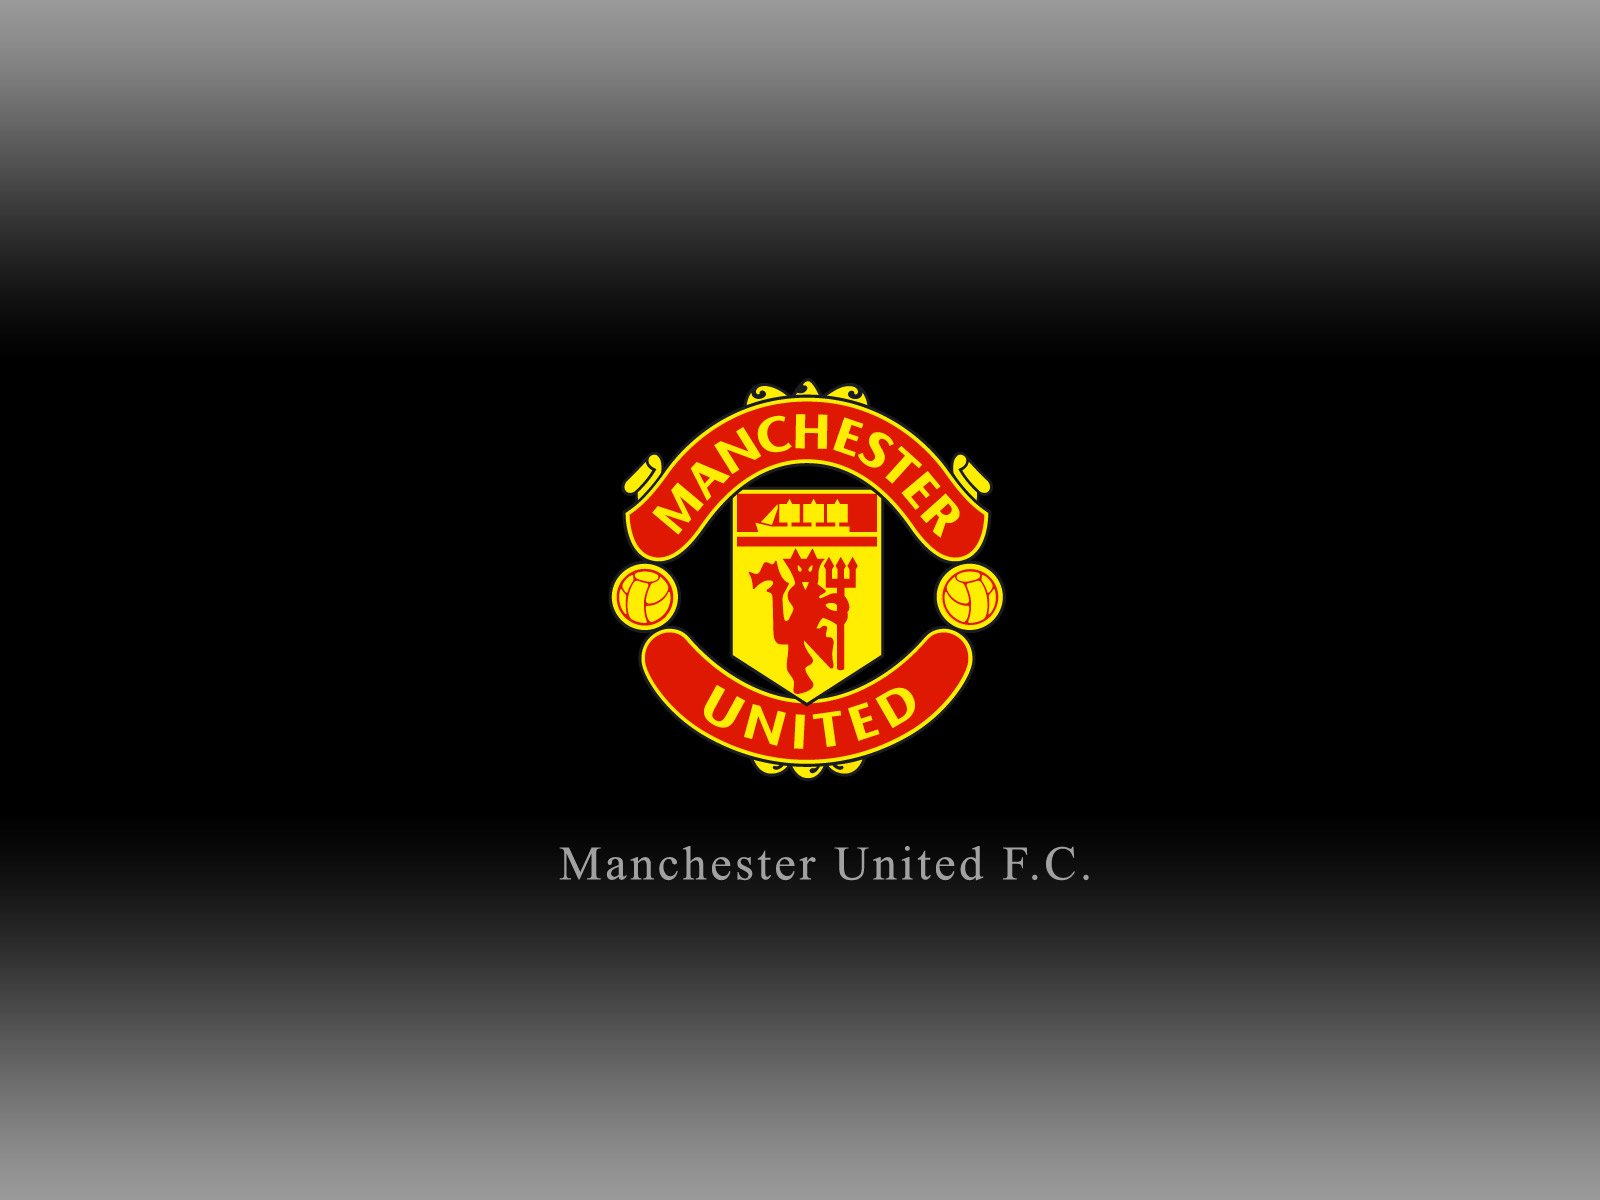 Wallpaper Arsenal Hd Manchester United Football Live Online Manchester United